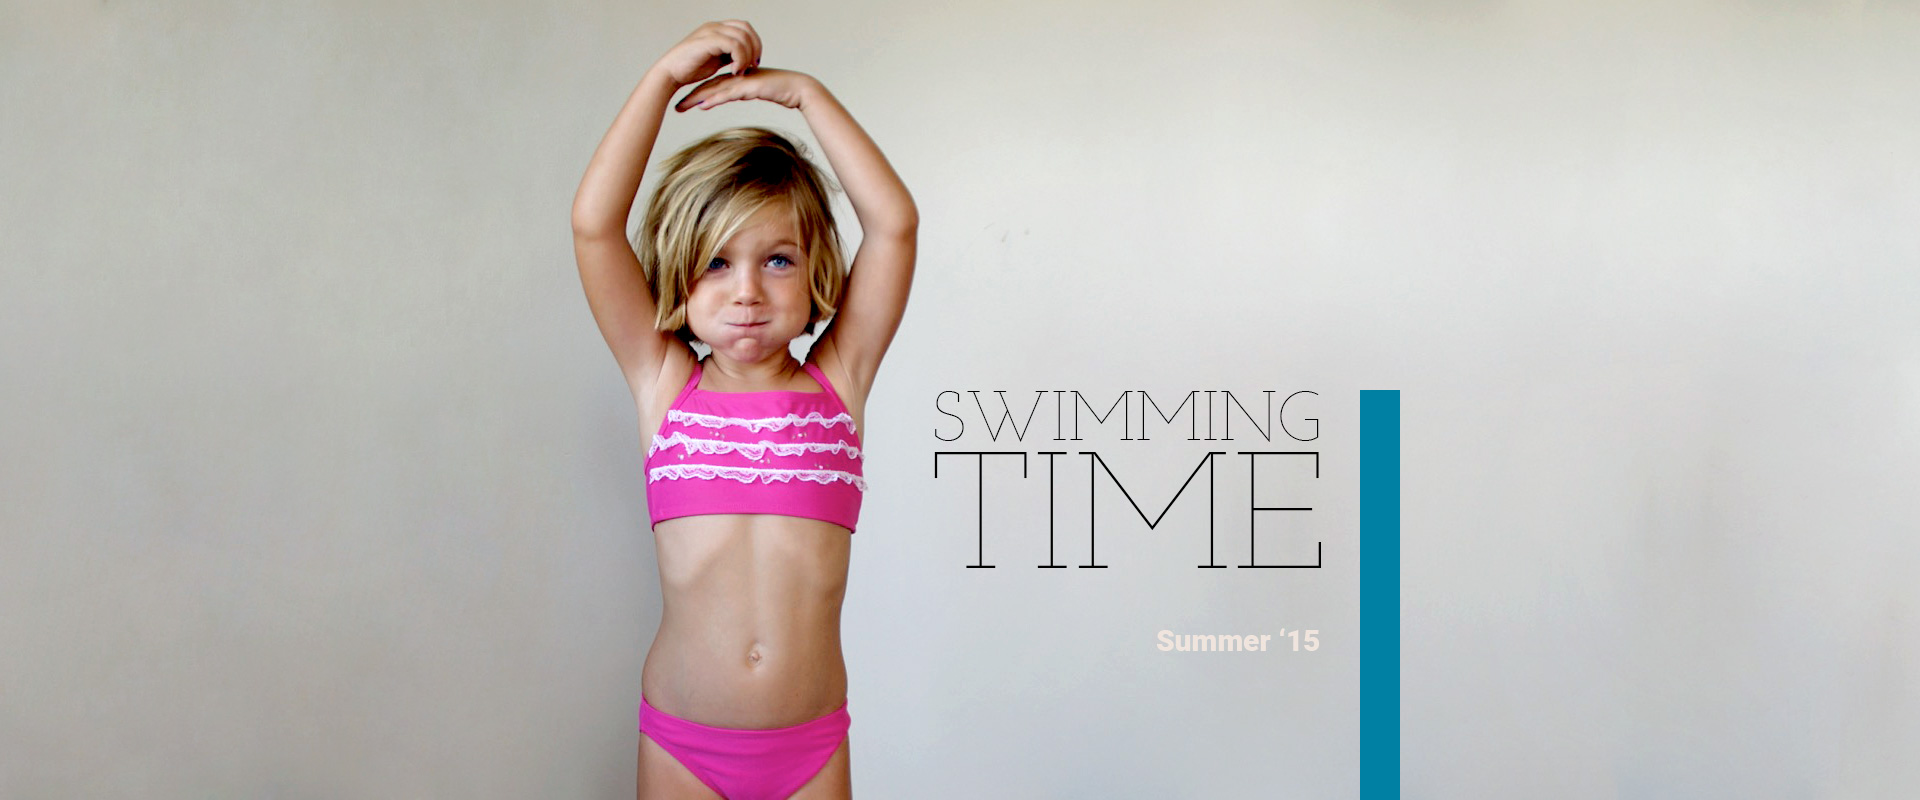 Titel: swimming time